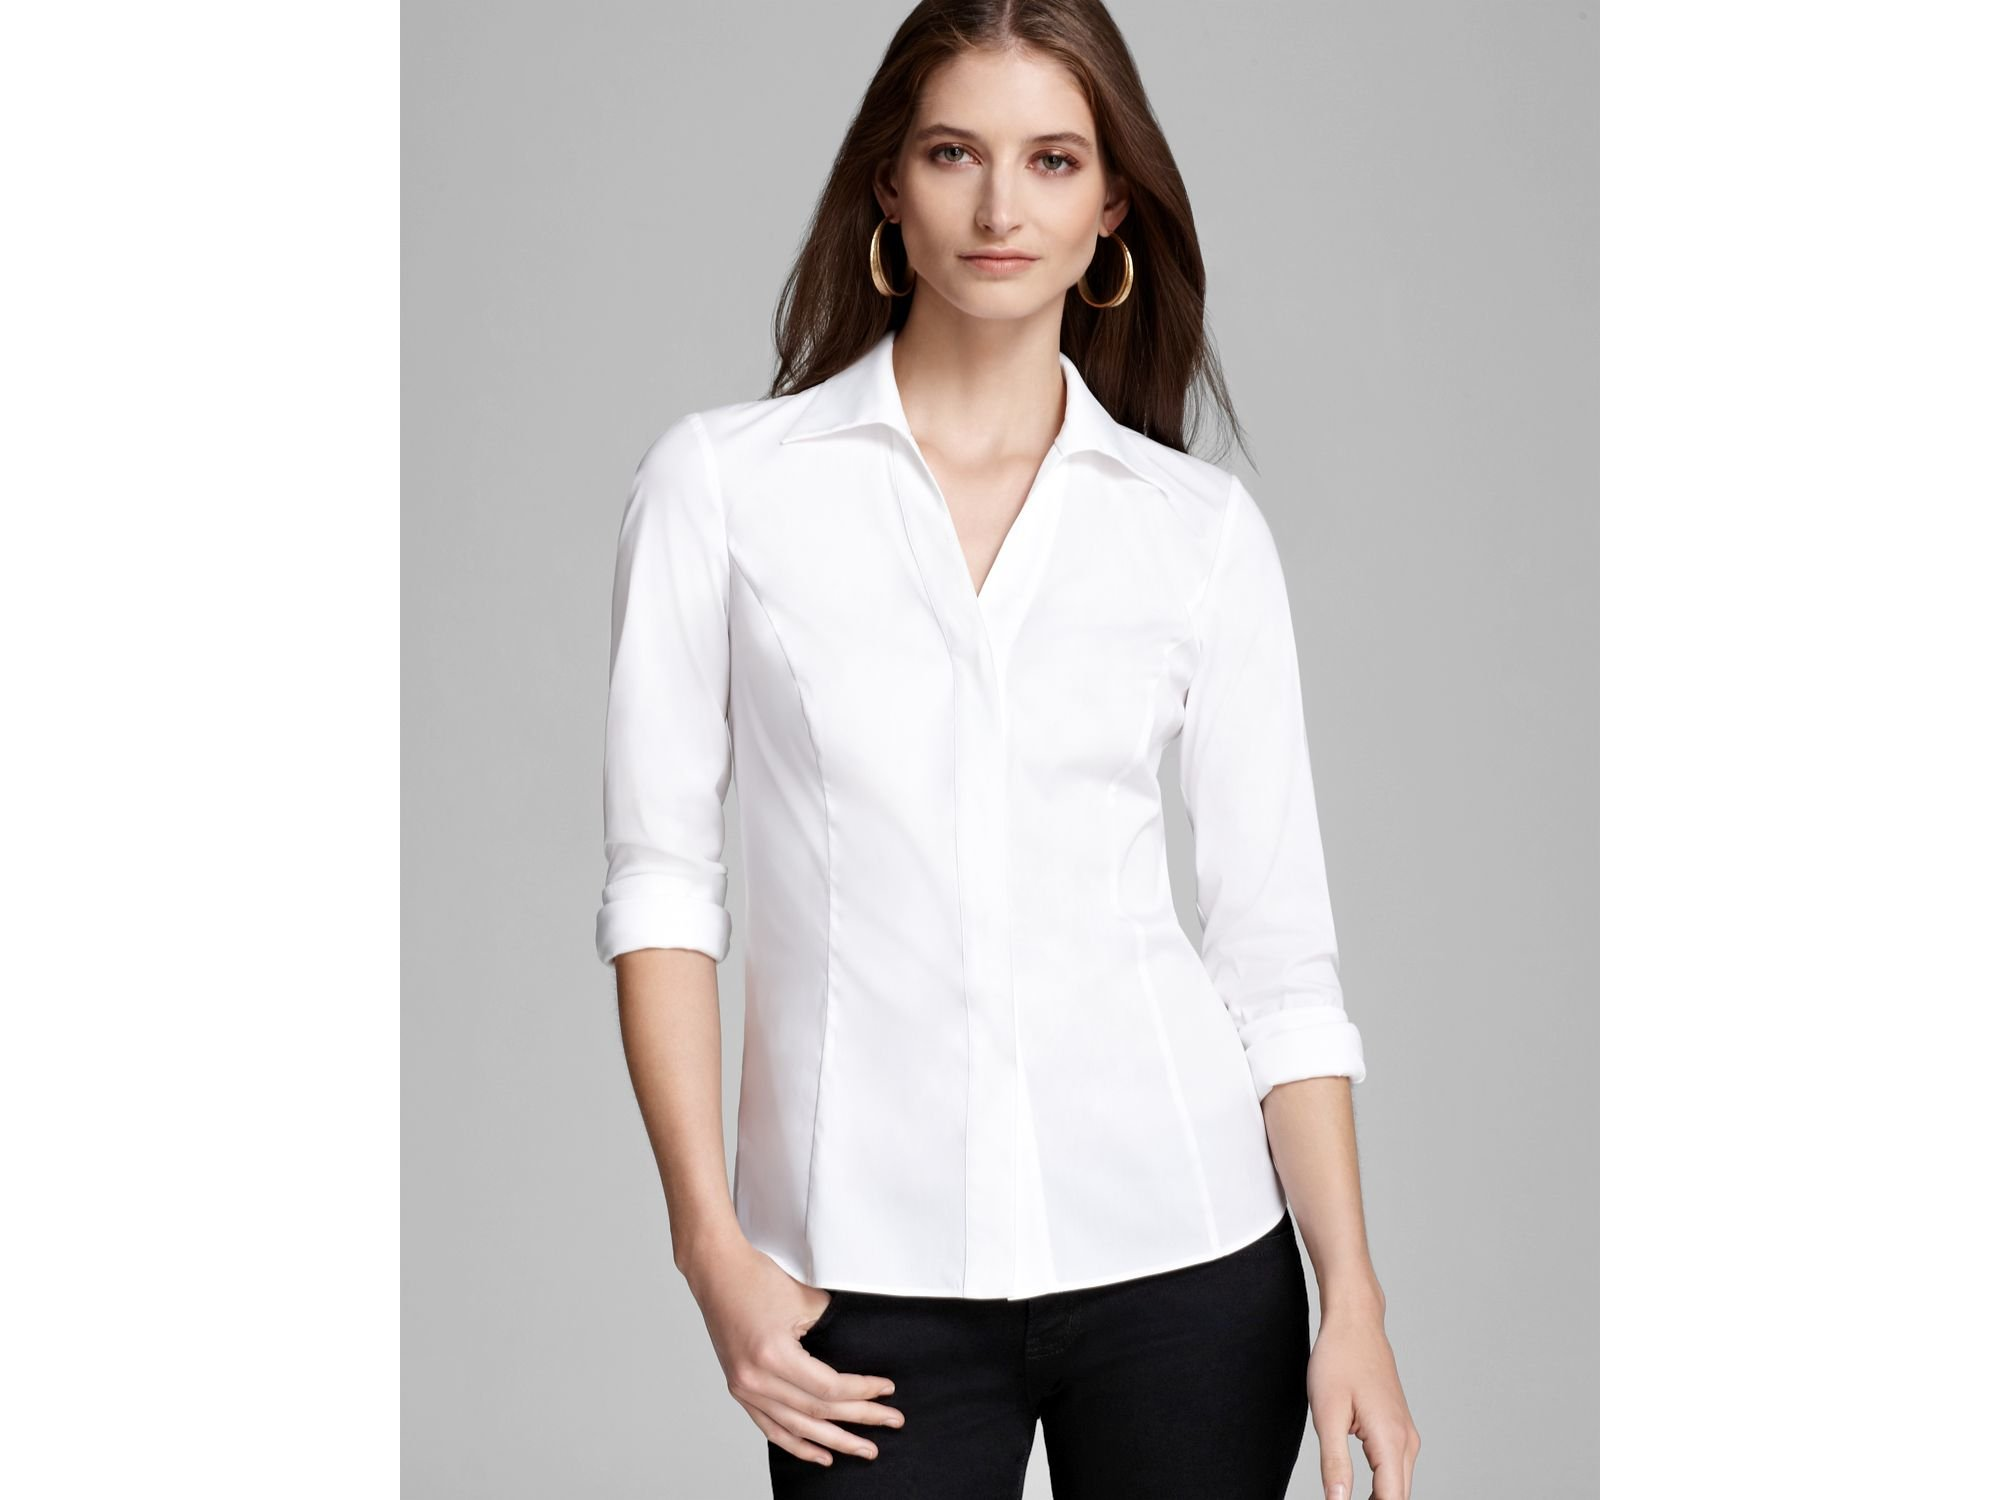 French Cuff Blouses For Women